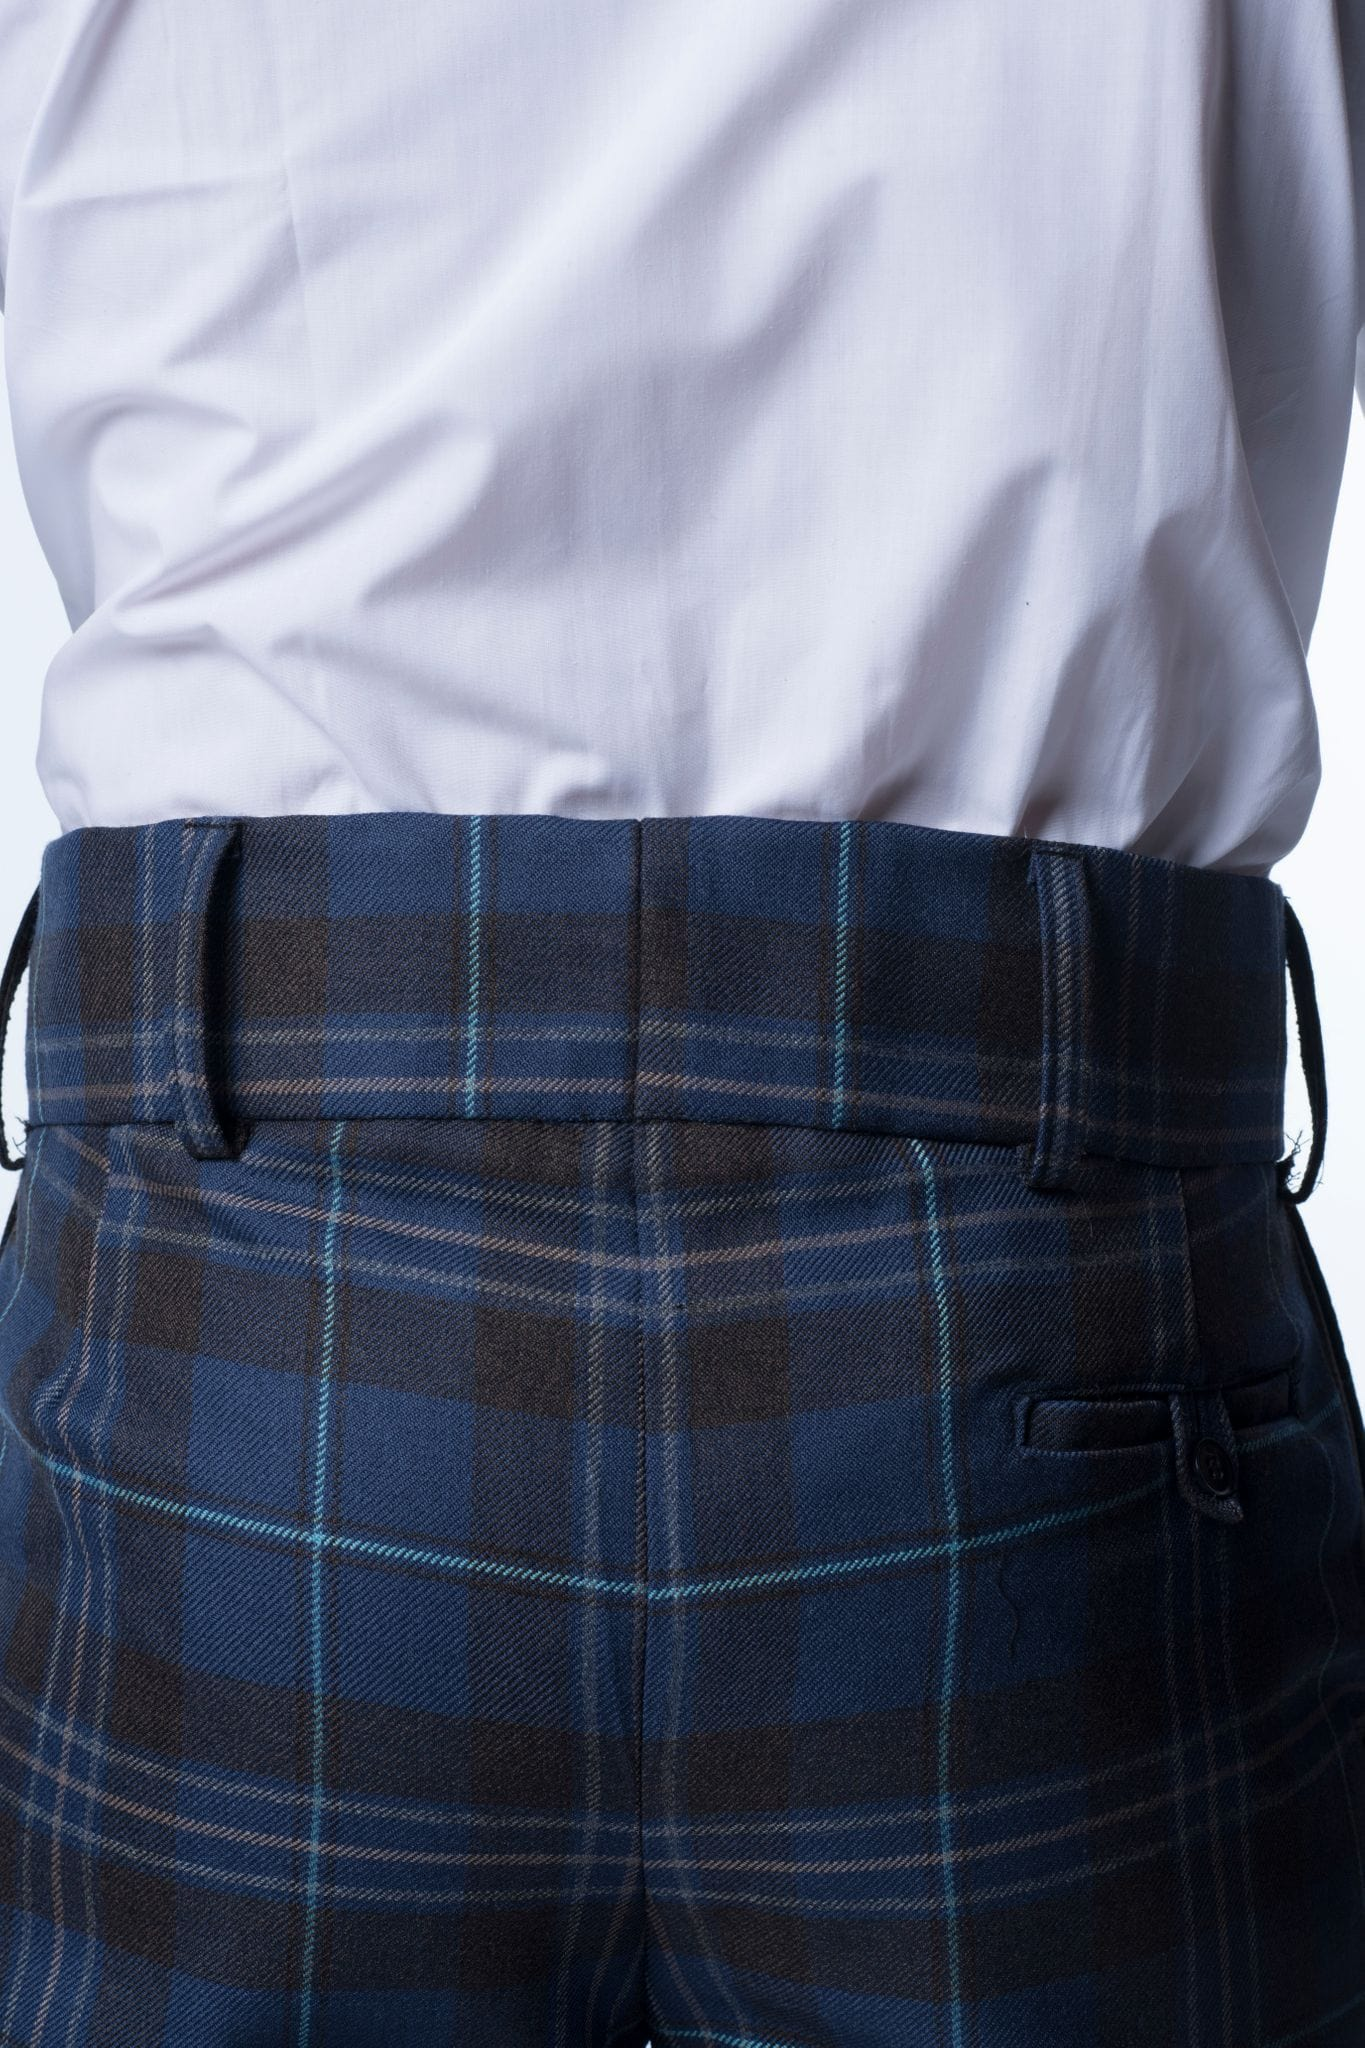 macgregorandmacduff Trousers & Trews Tartan Trousers Package - Choose Your Tartan